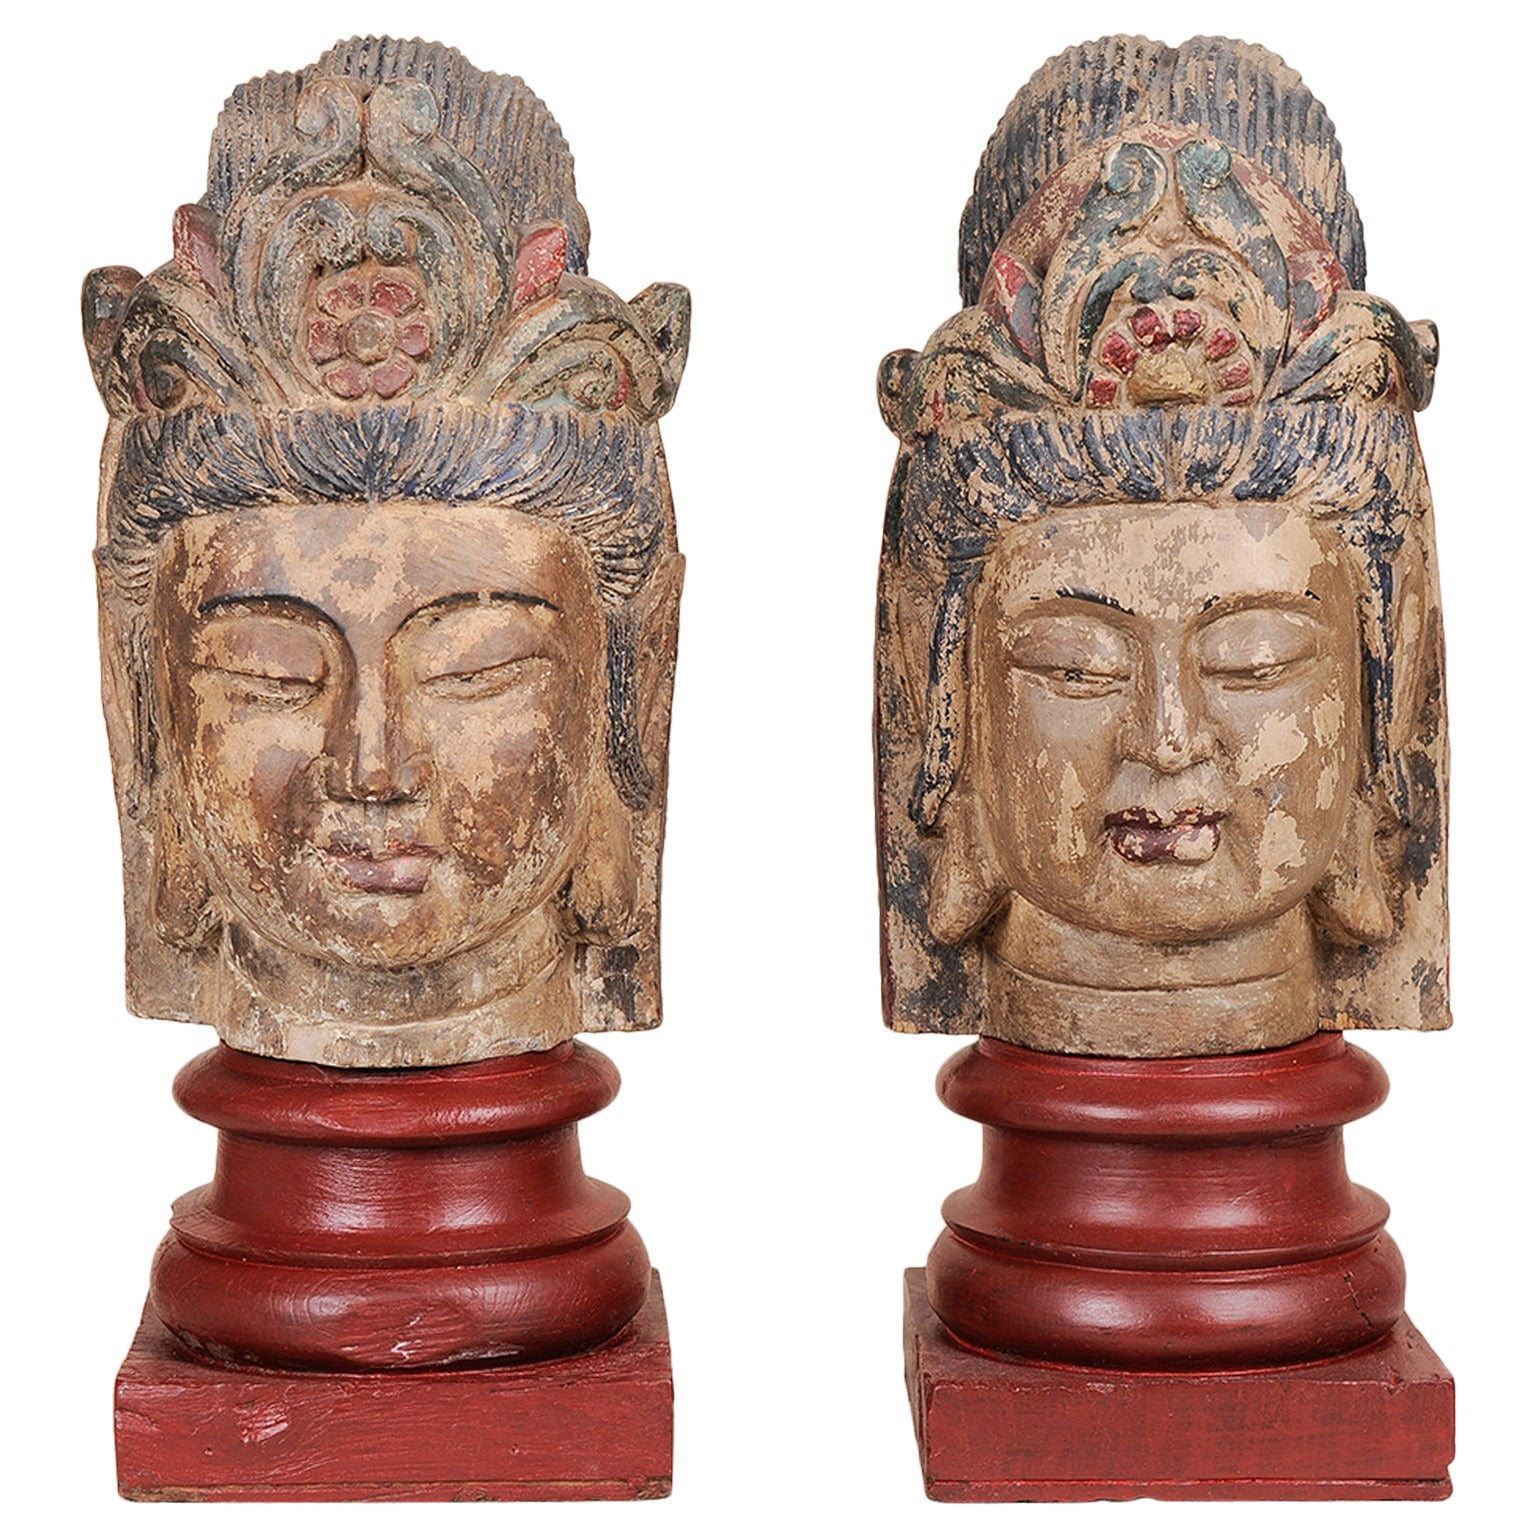 Old Buddha Wooden Sculptures, Polychromy Traces